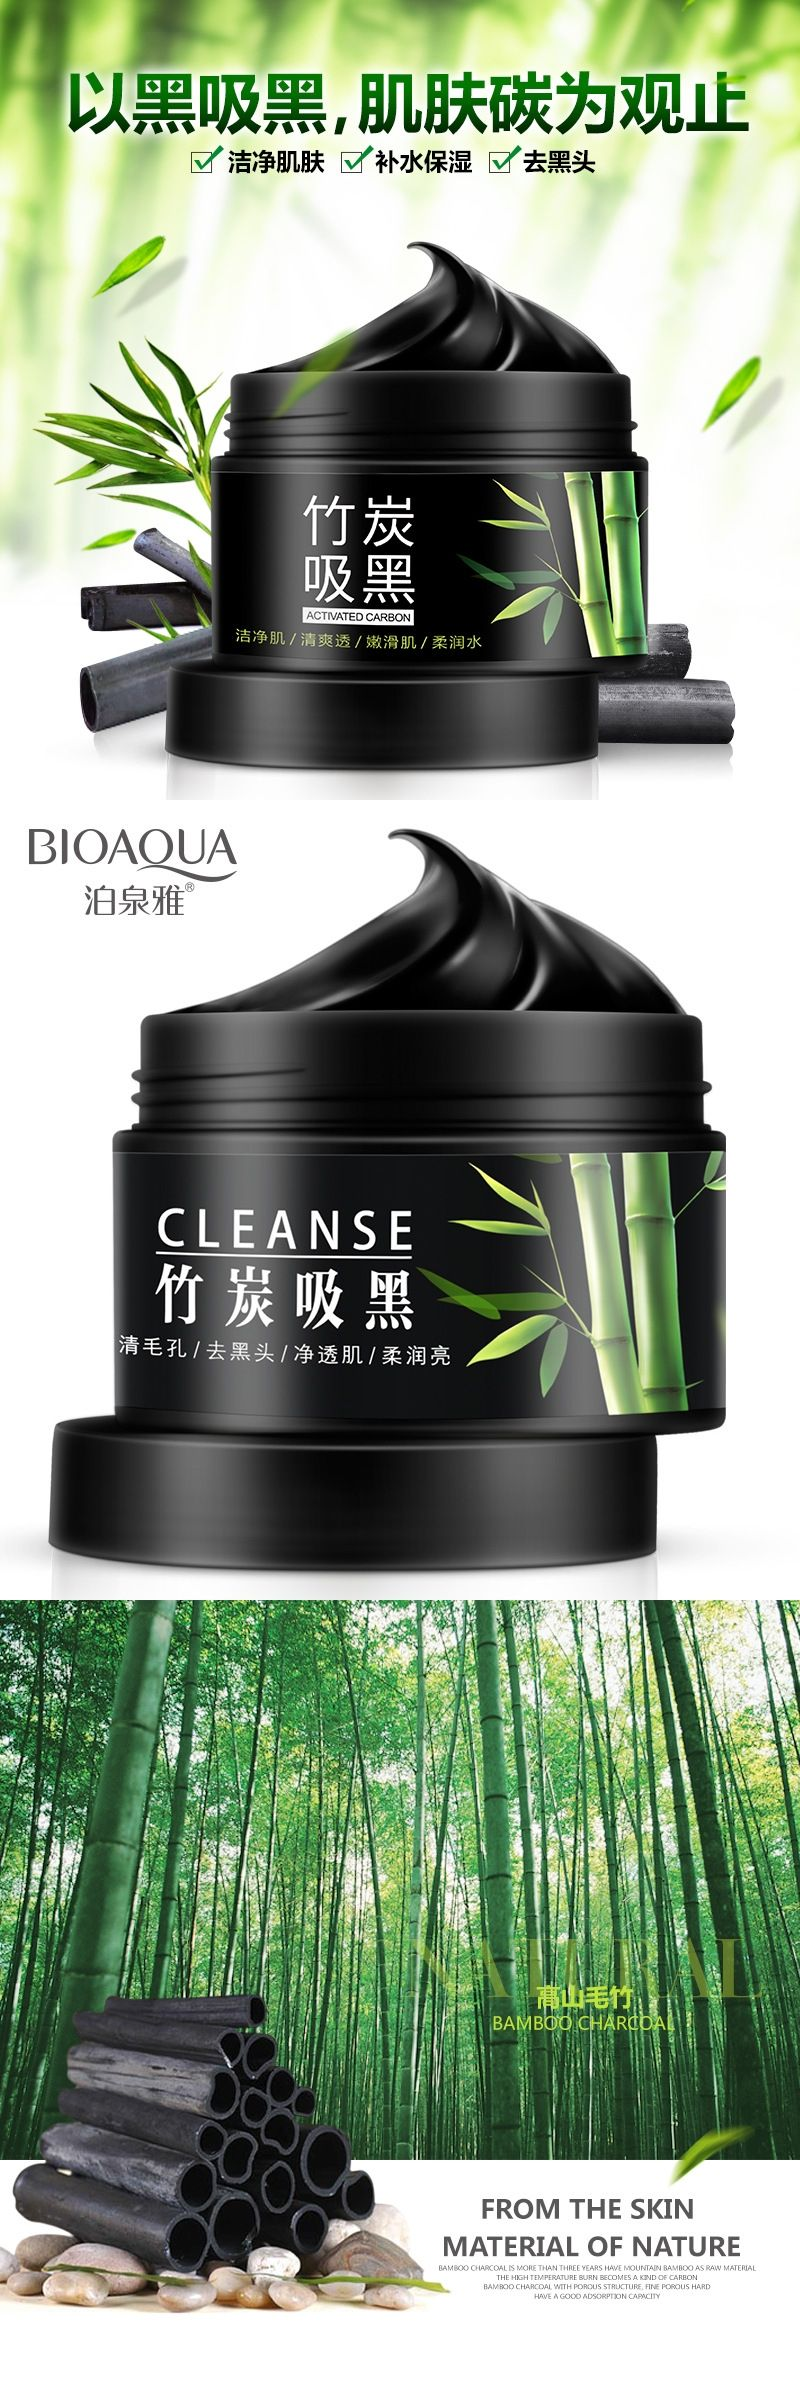 Bioaqua Face Care Black Facial Mask Bamboo Charcoal Blackhead Activated Carbon Cleansing Moisturizer Skin Anti Acne